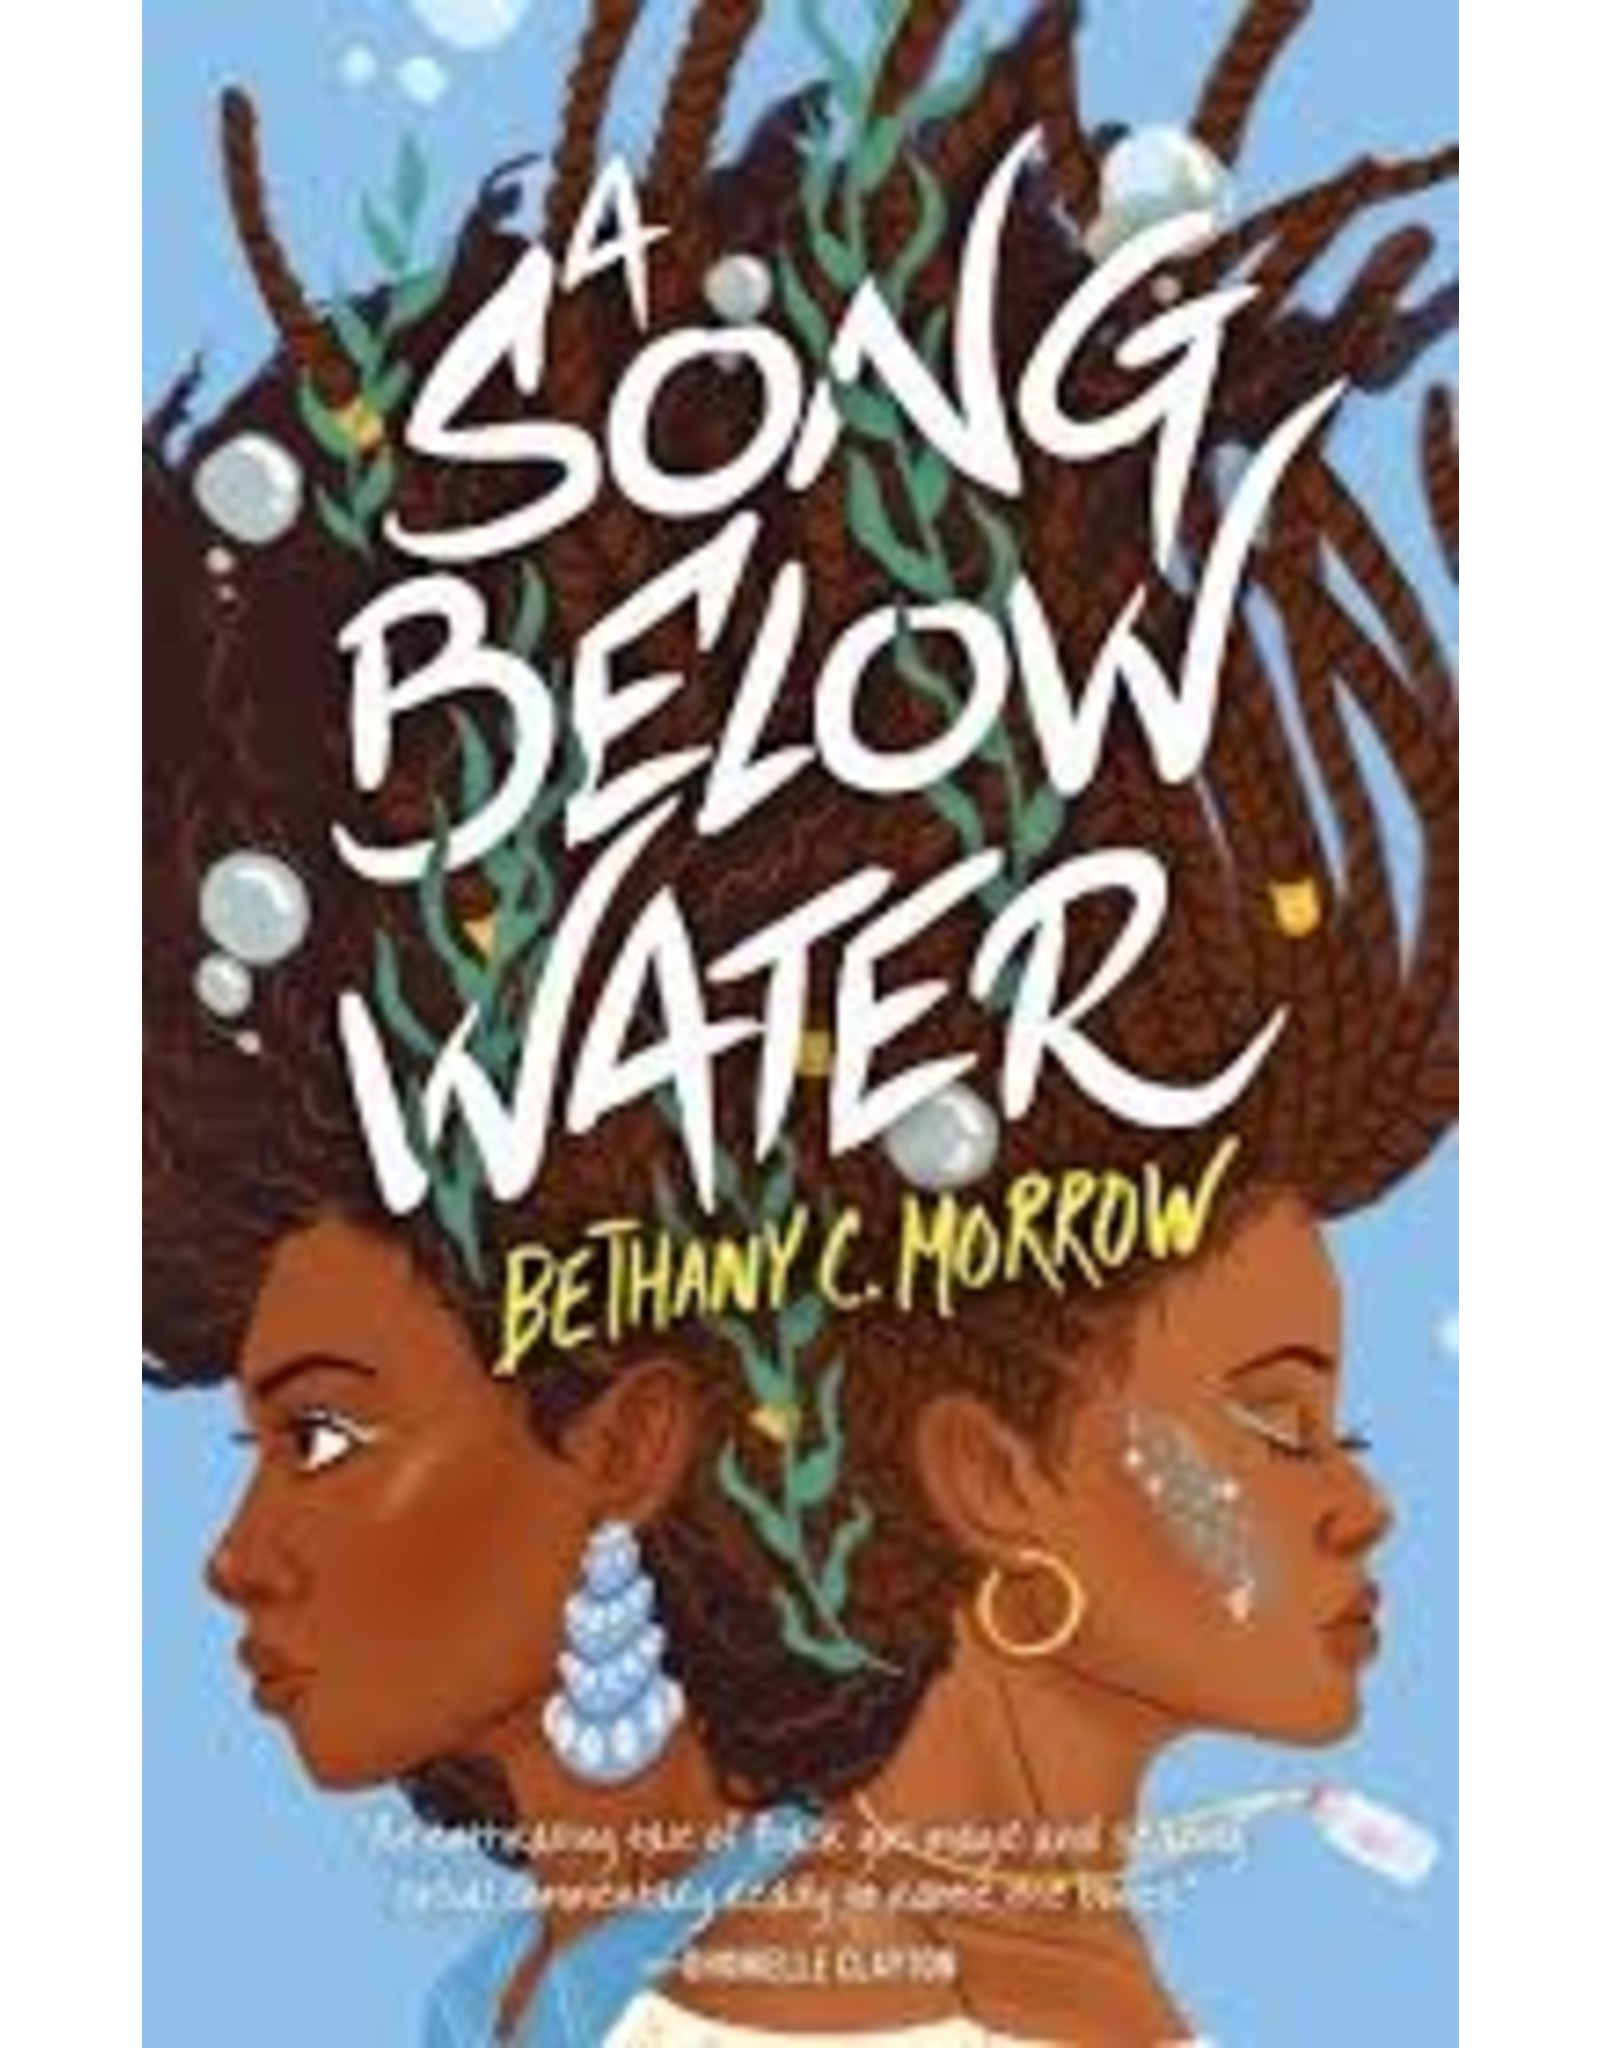 Books A Song Below Water by Bethany C. Morrow